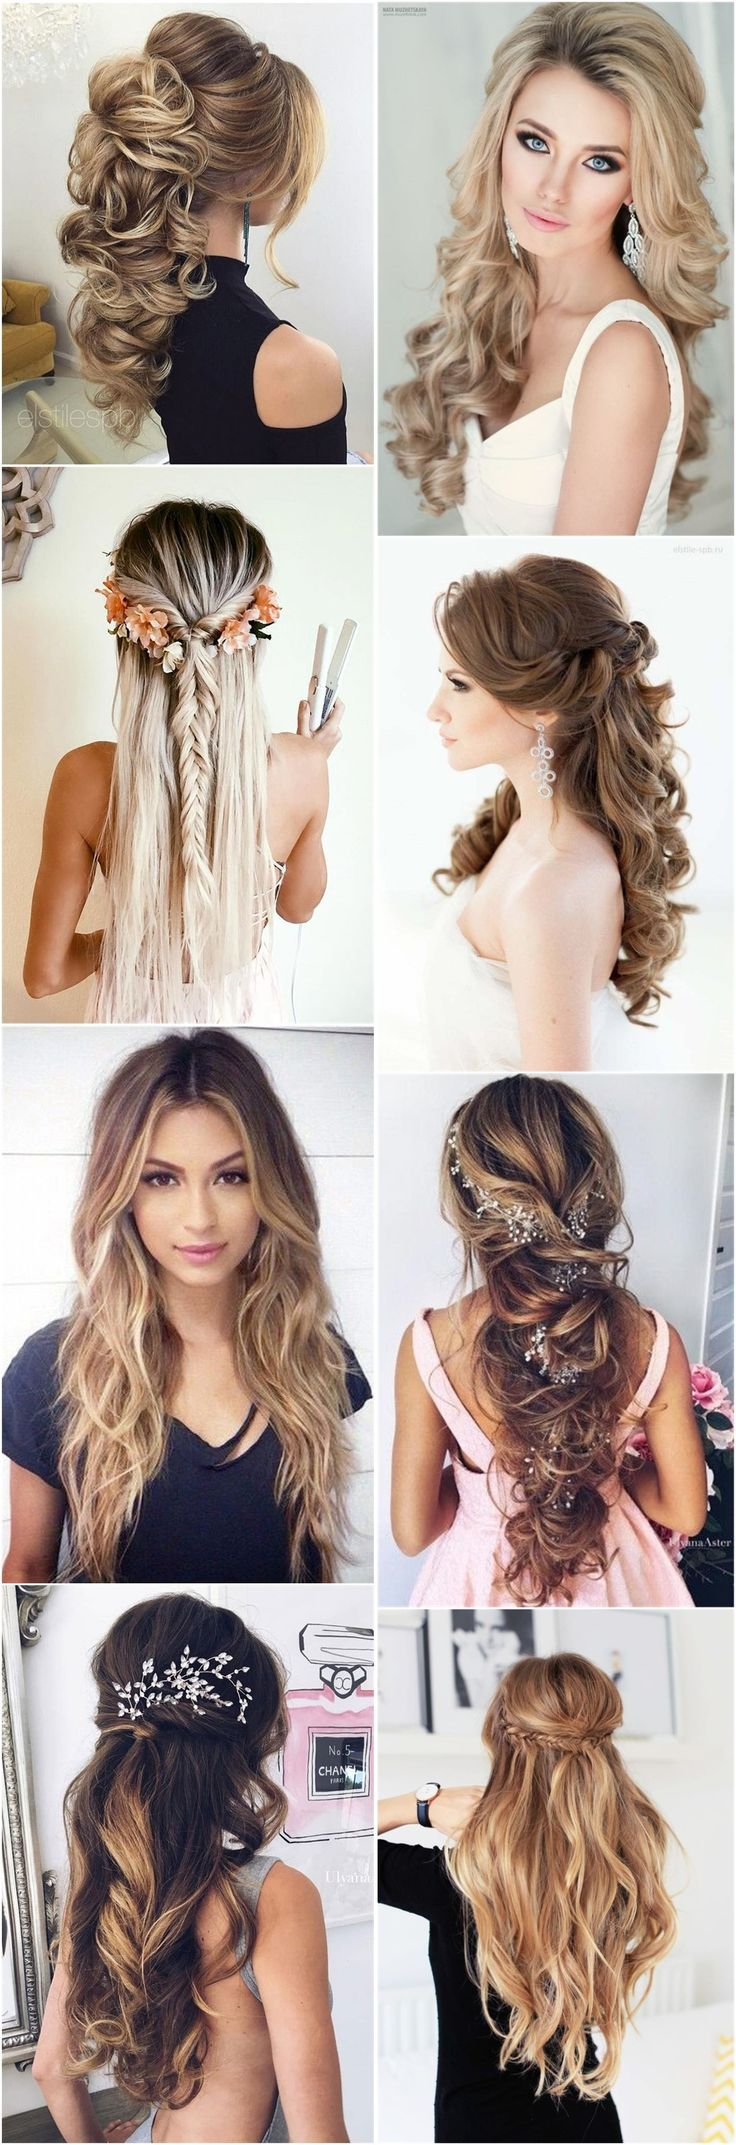 unique long hair styles best 20 unique wedding hairstyles ideas on 5005 | 24f8b25e9e2d93076313795945ec3c58